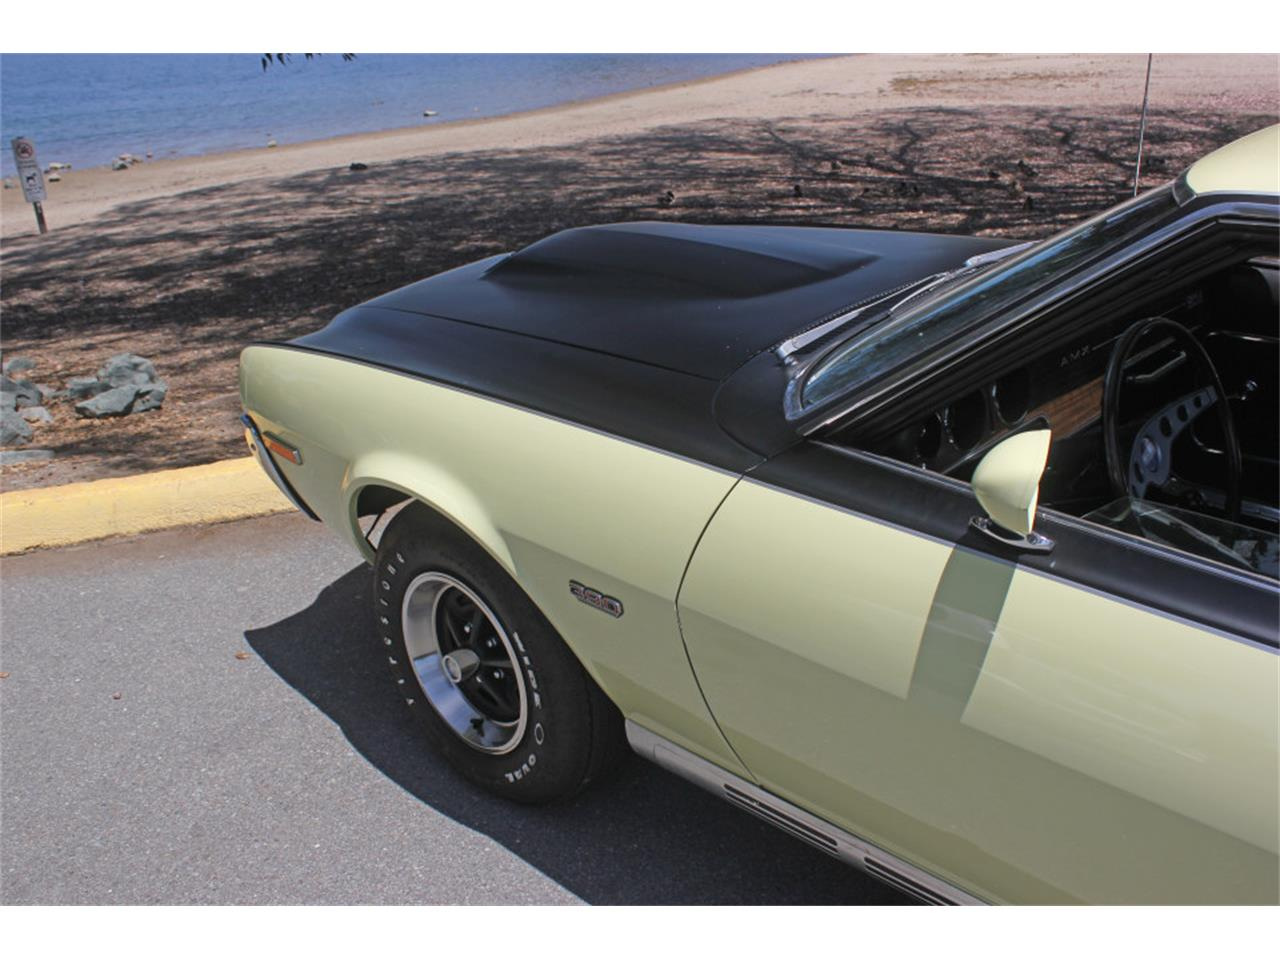 Large Picture of '70 AMC AMX located in San Diego  California - $59,500.00 - QCFB